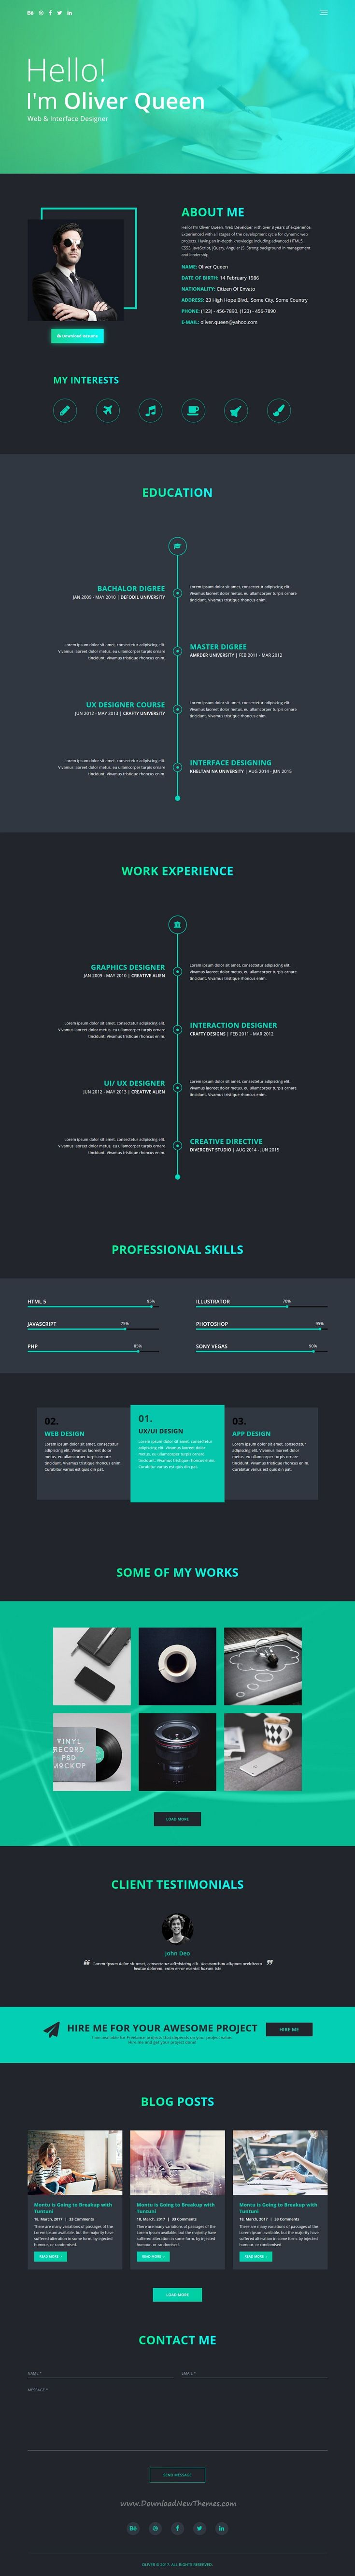 118 best Resumes images on Pinterest | Resume, Cv template and ...